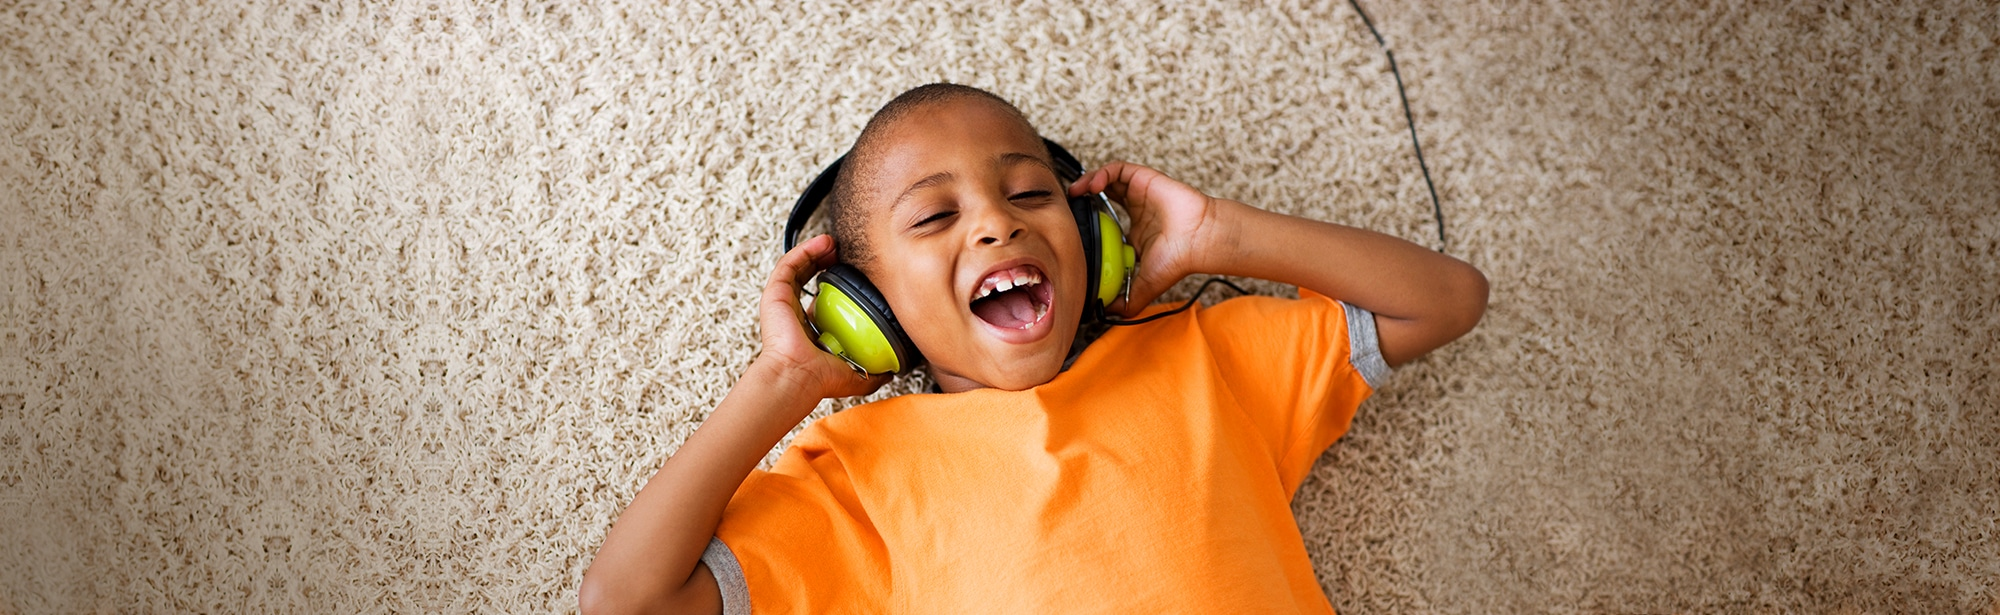 Boy smiling and listening to music